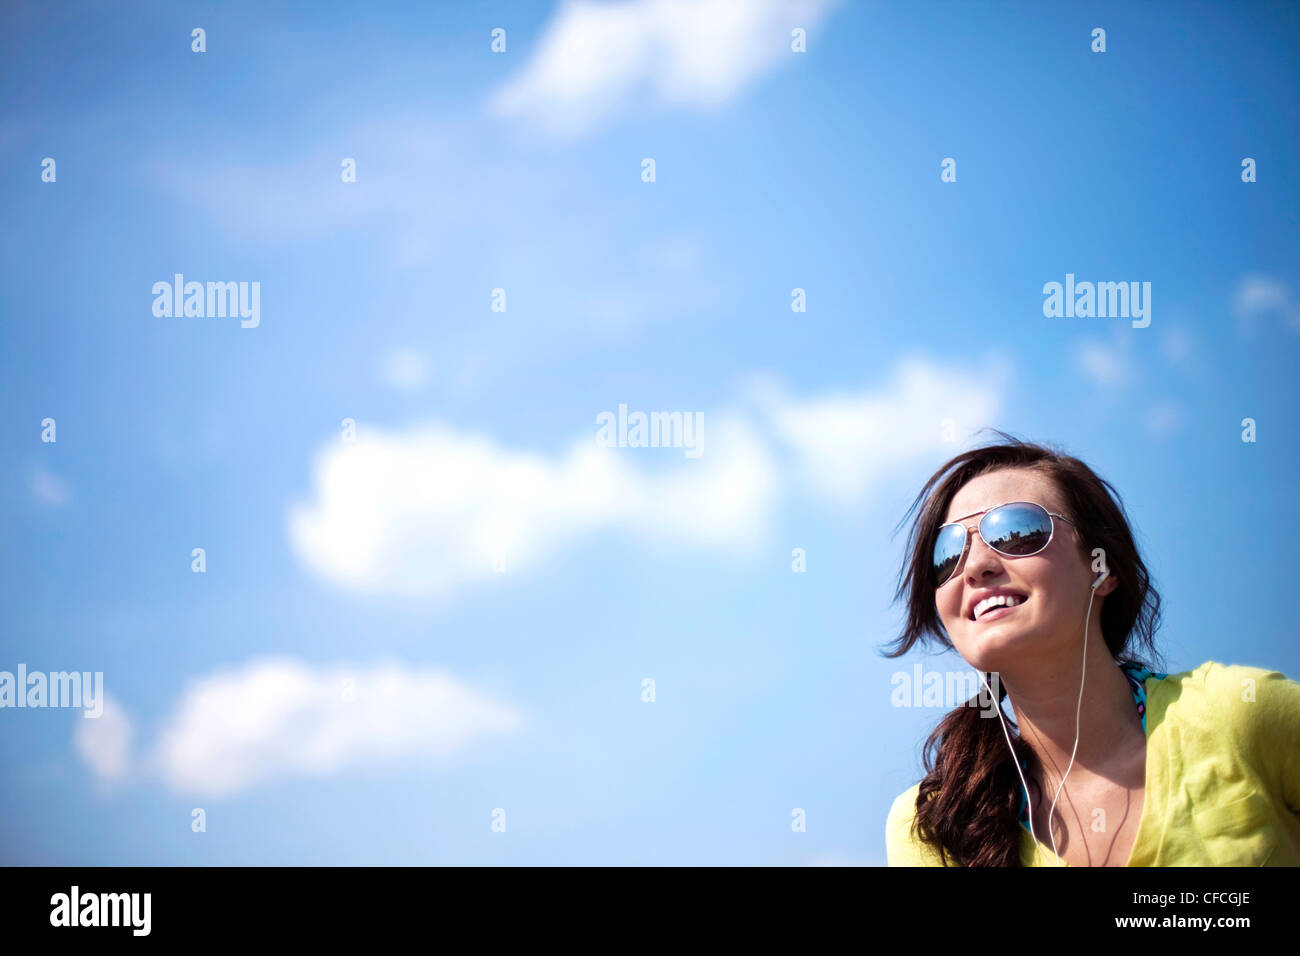 A young woman looks off smiling while listening to music. - Stock Image